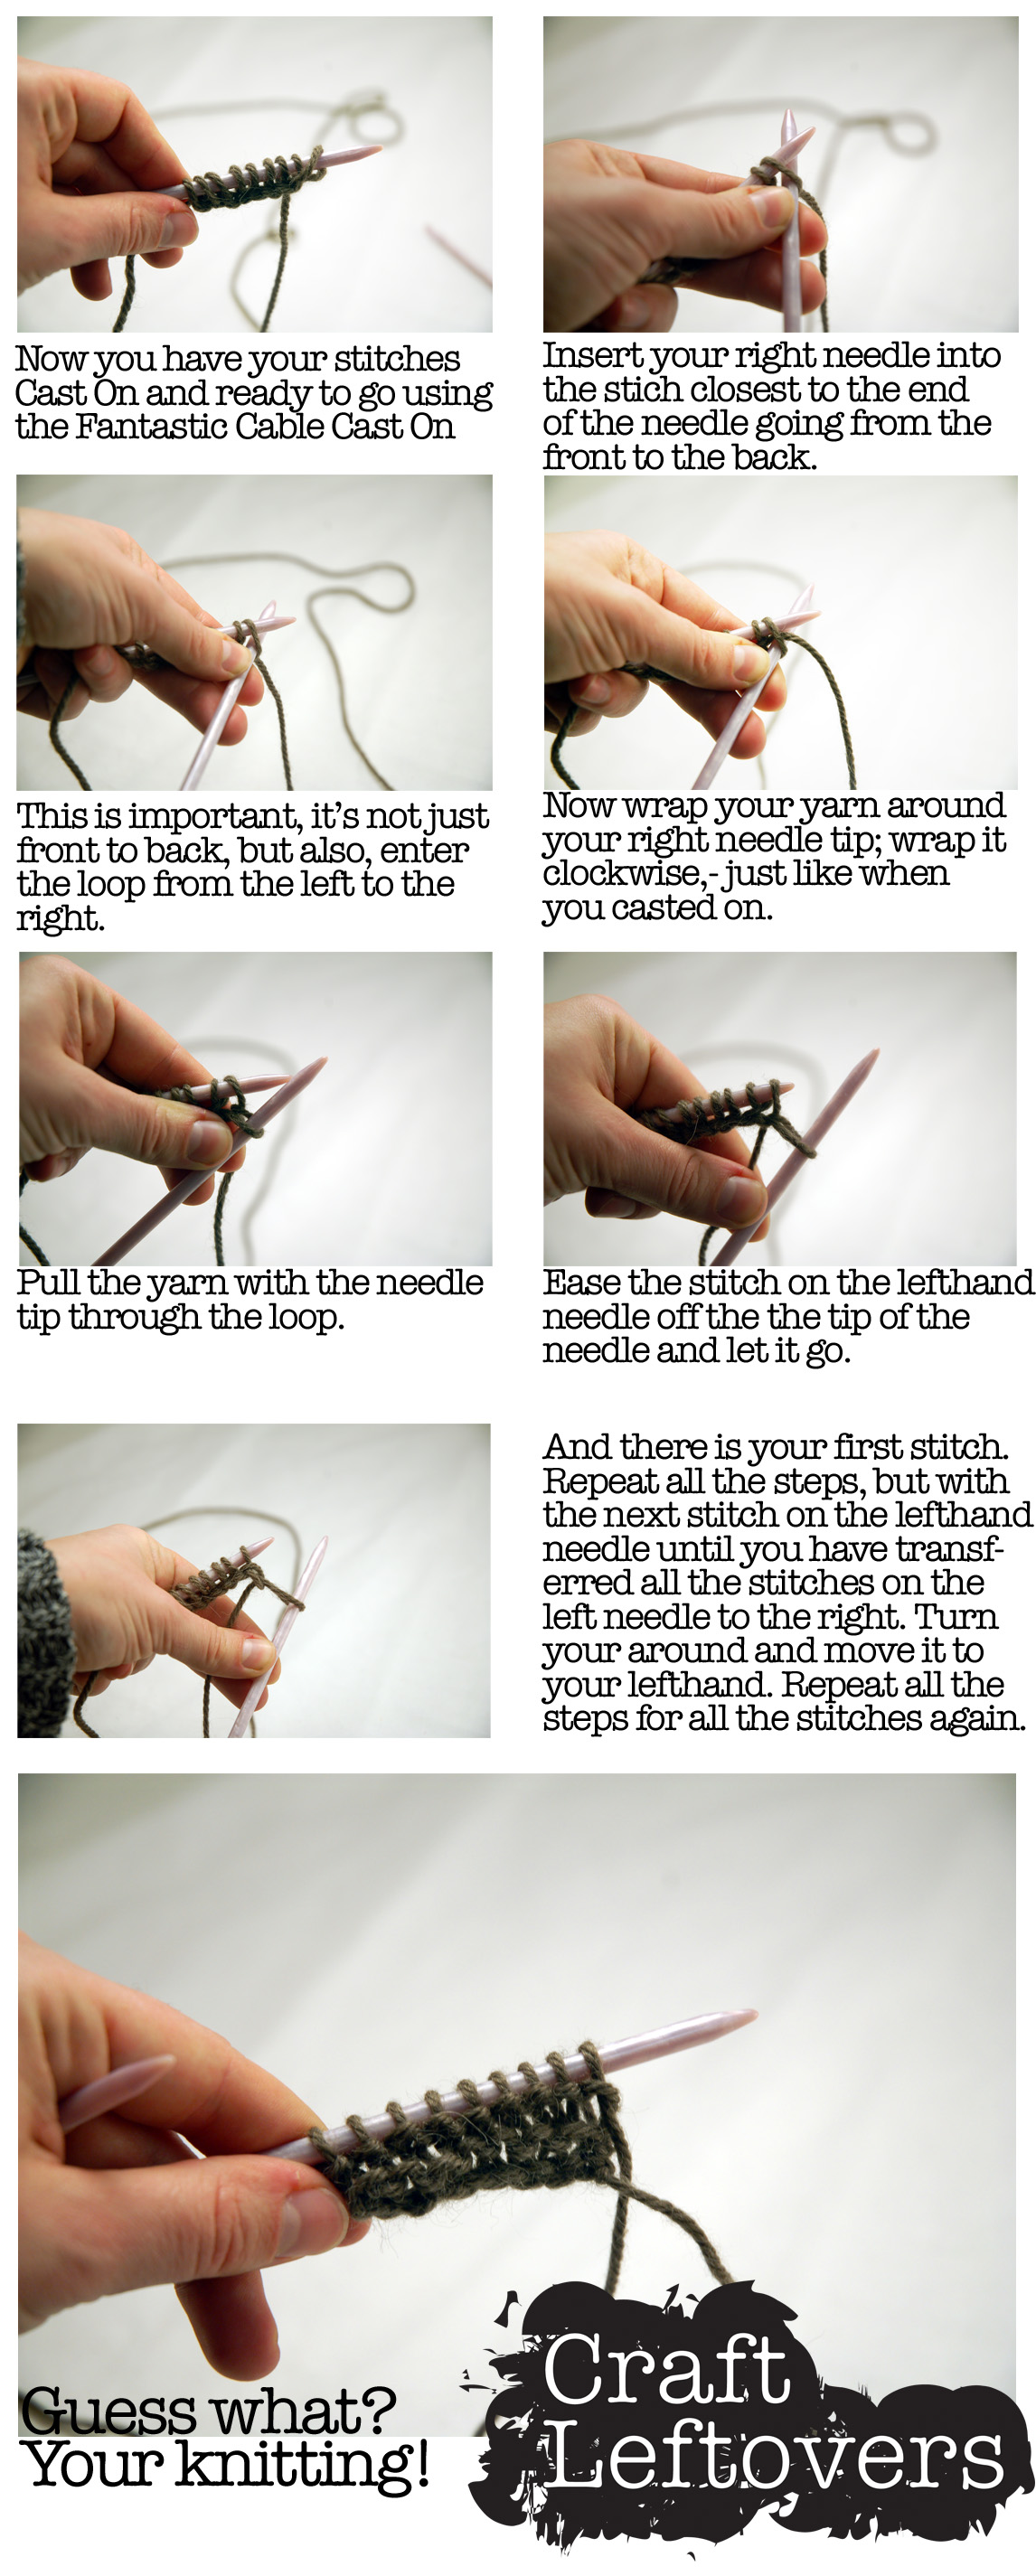 How To Learn Different Knitting Stitches : learn knitting - photos images - Bloguez.com